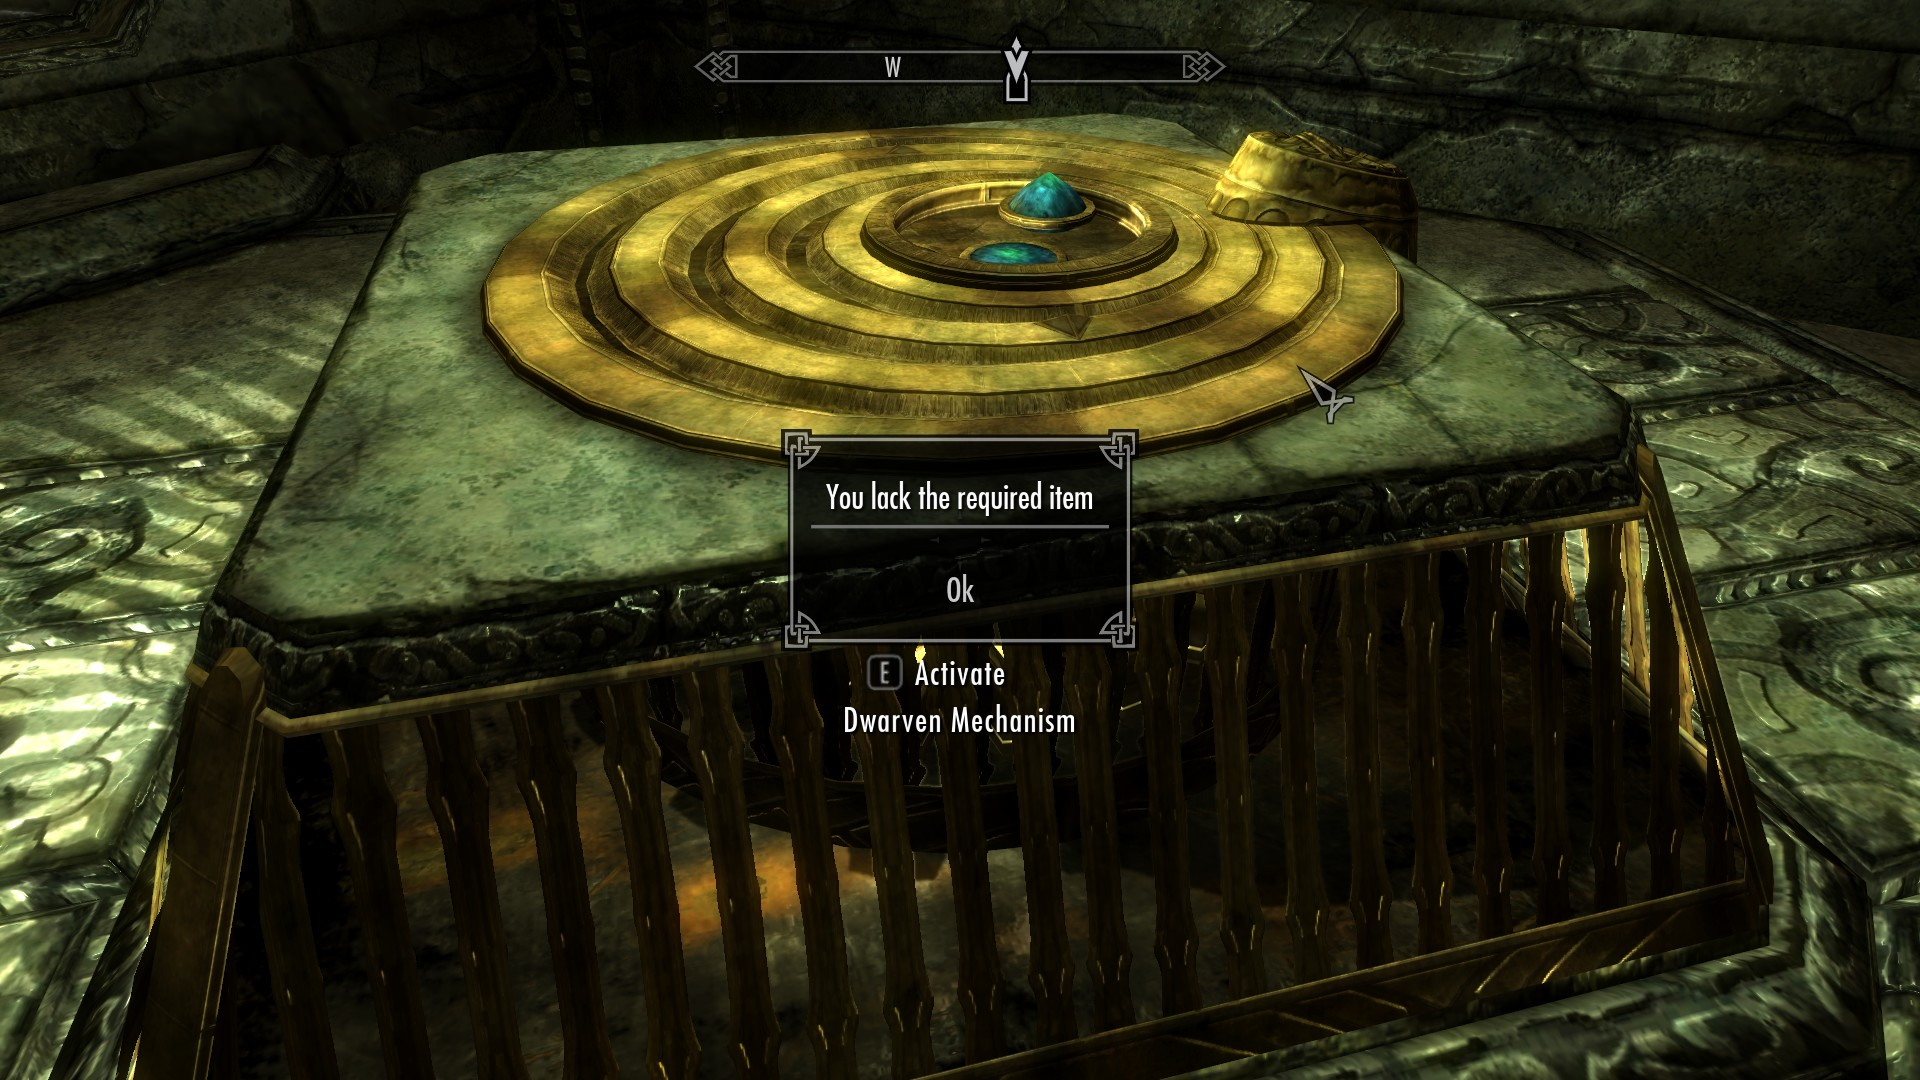 Hd Puzzle Wallpaper The Elder Scrolls 5 Skyrim How Do I Activate This